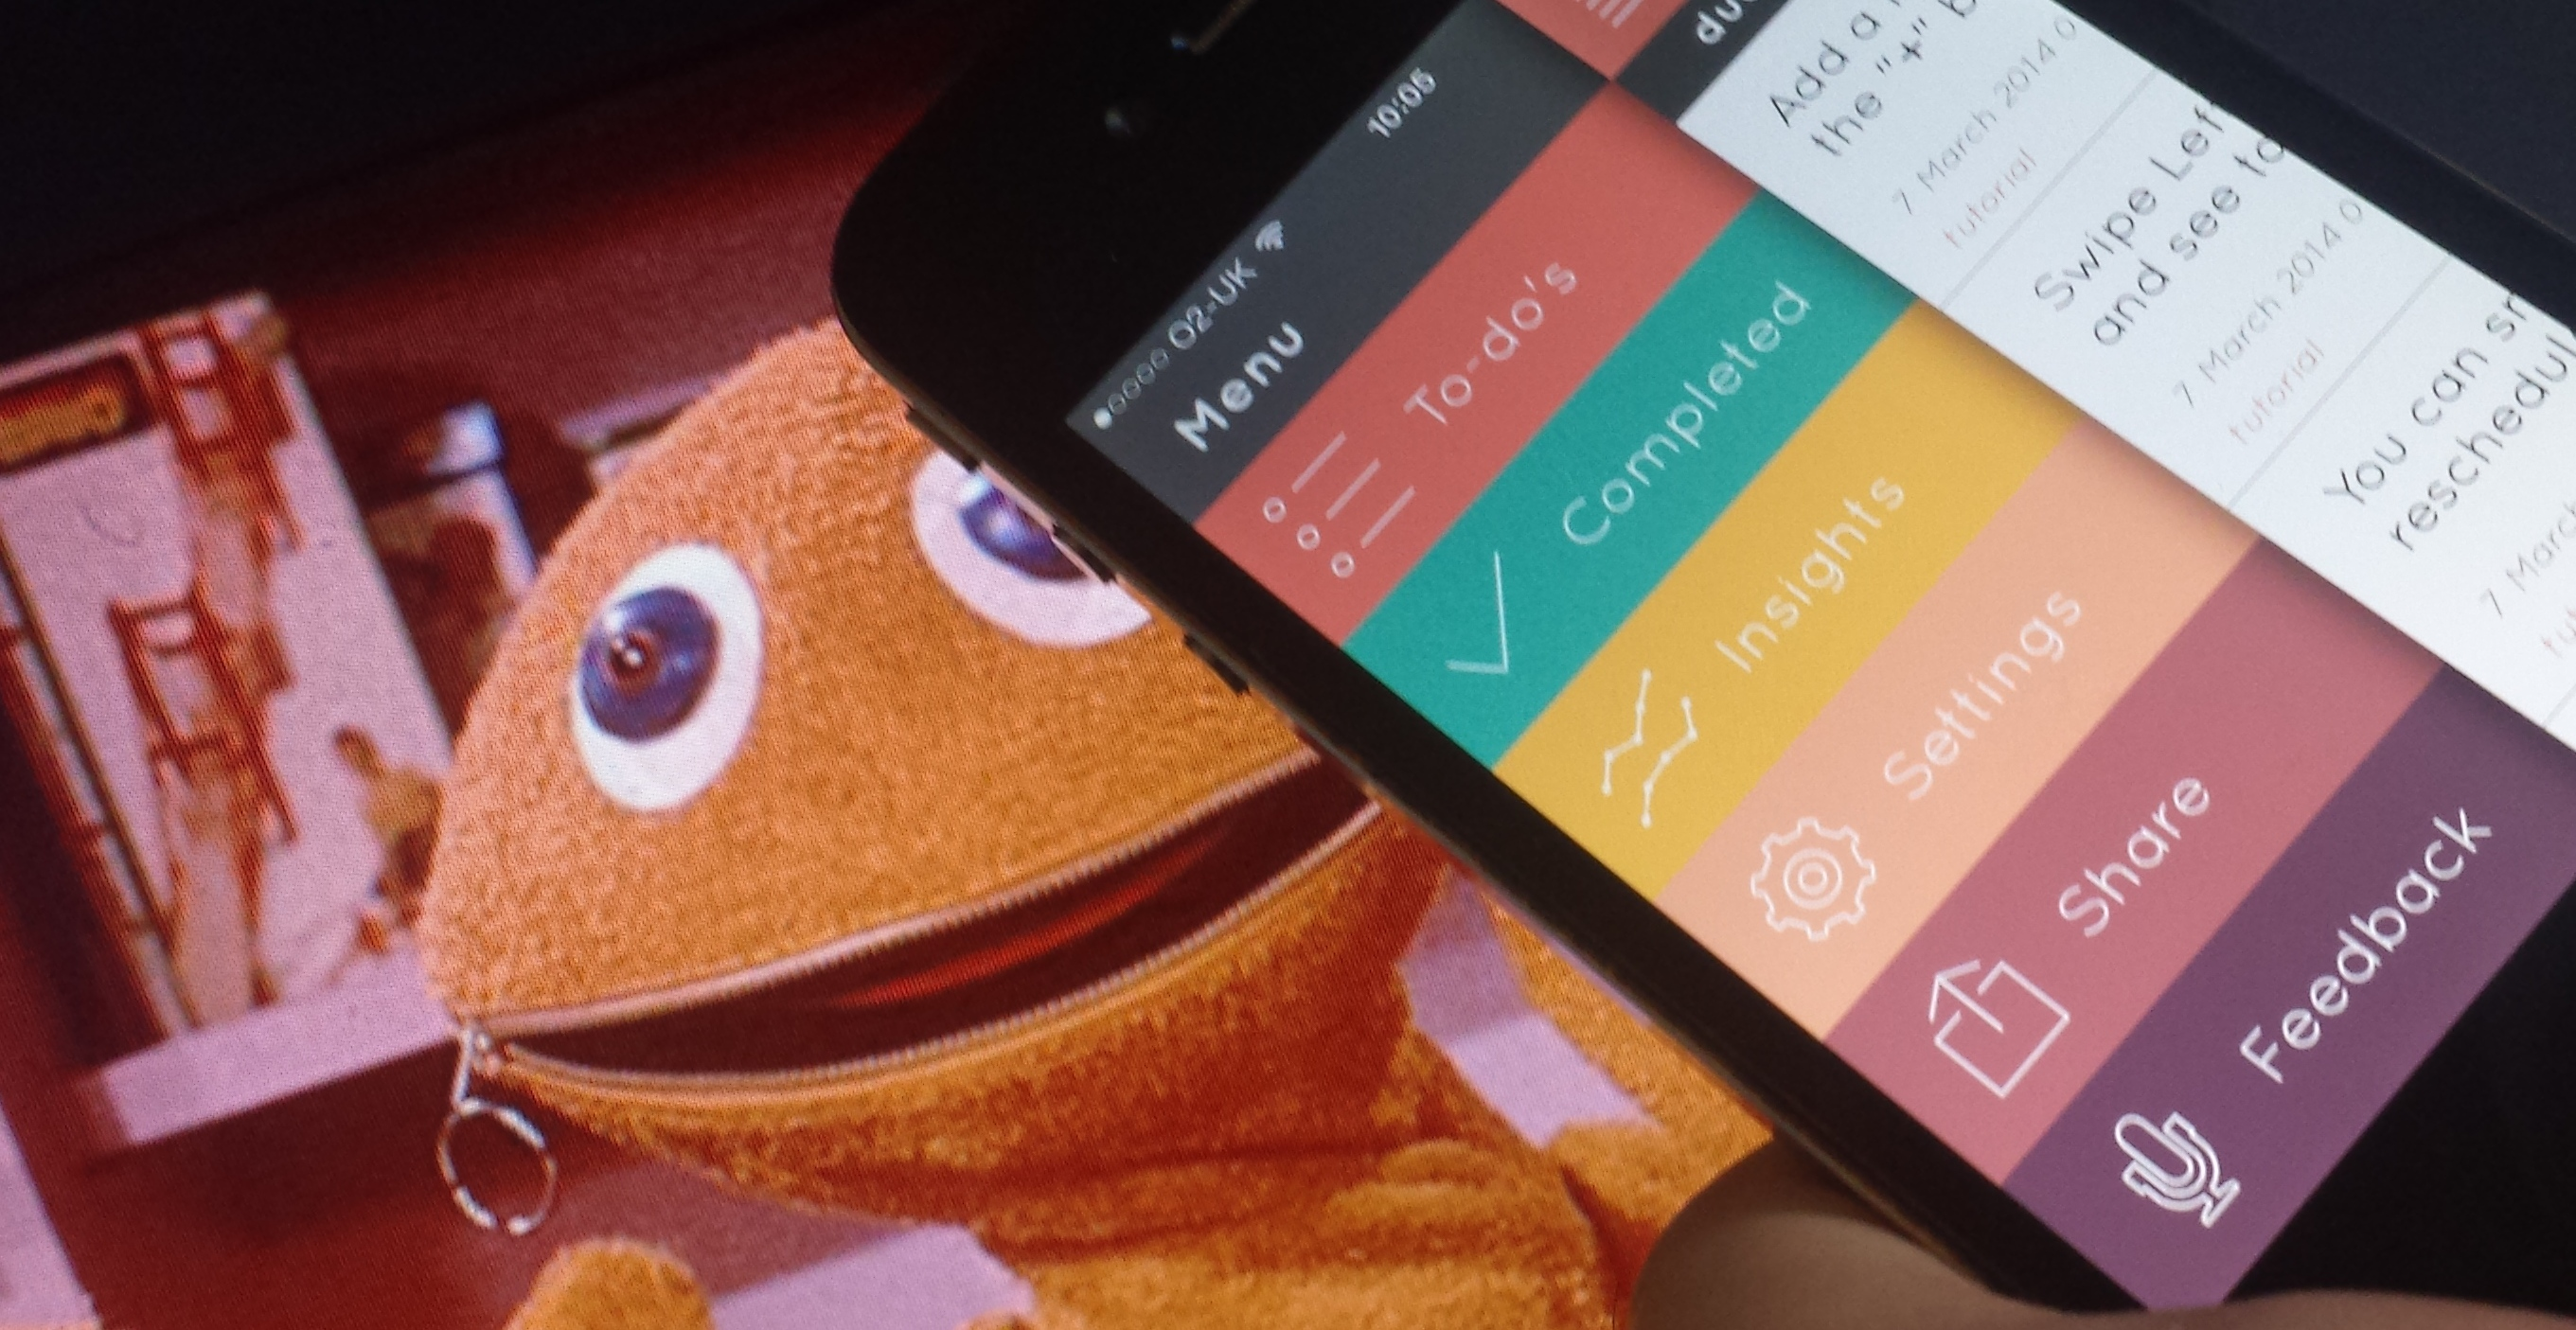 Zippy: A Gorgeous Task-Management App for iPhone